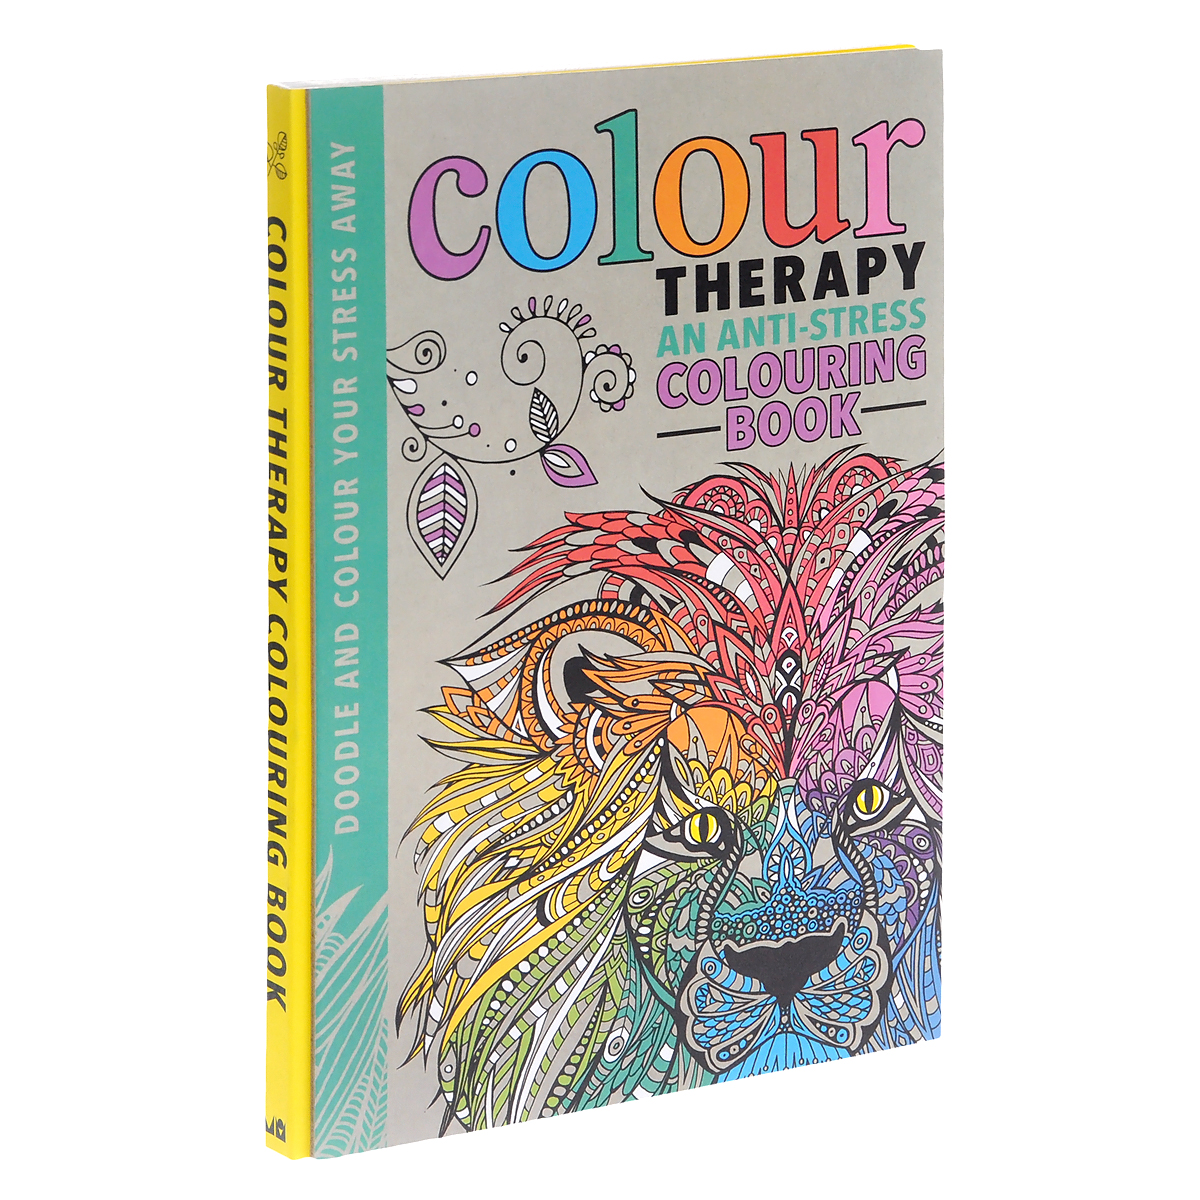 Colour Therapy: An Anti-Stress Colouring Book facilitating increased creativity for adults